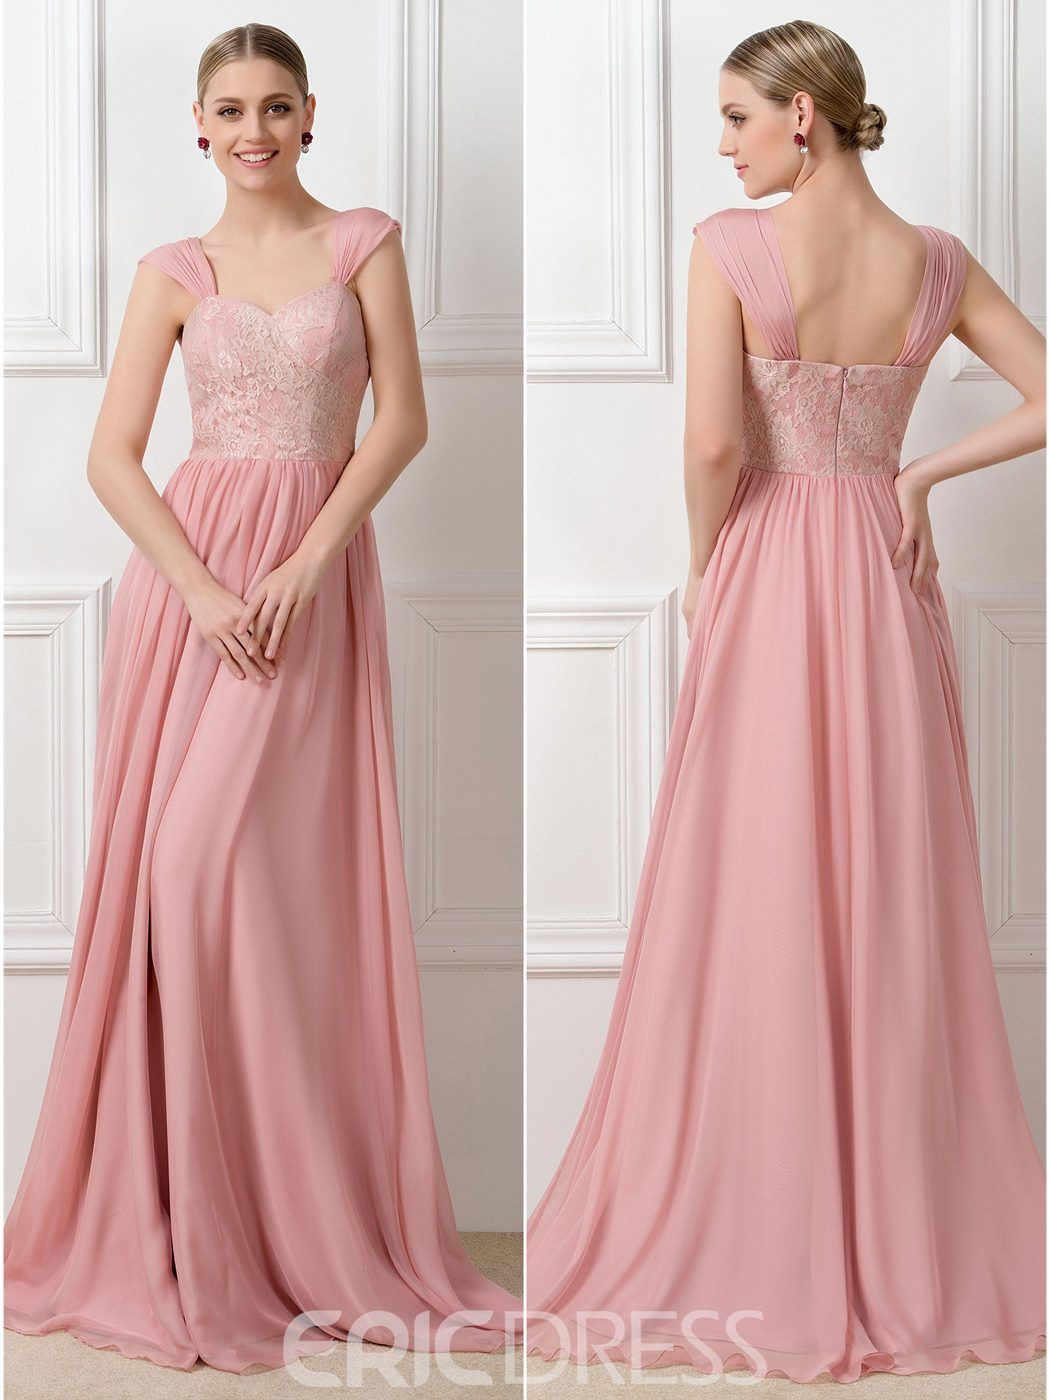 Ericdress Lace Convertible Long Bridesmaid Dress